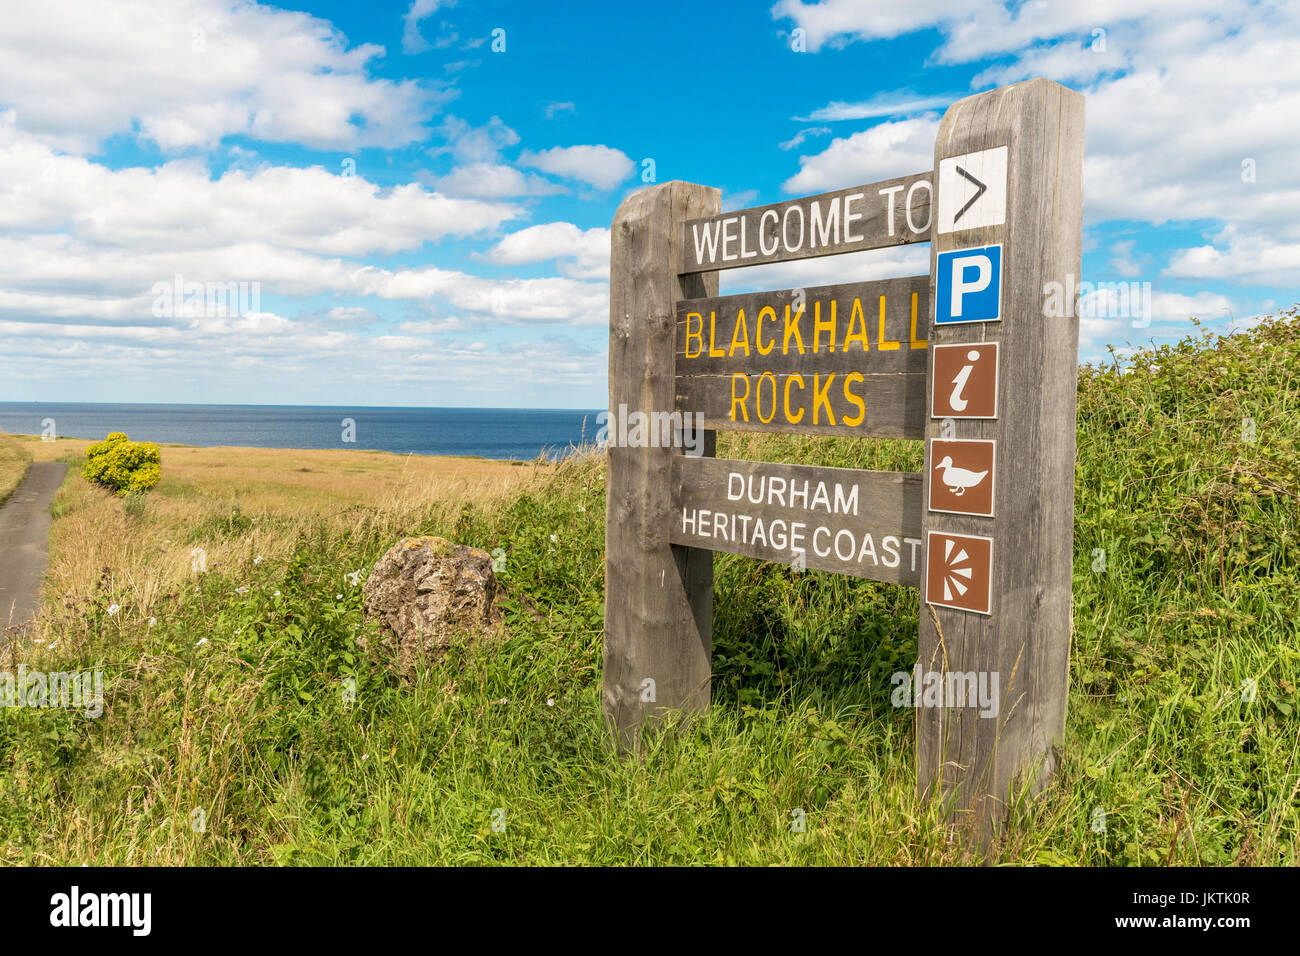 Blackball Rocks, County Durham, UK - Stock Image